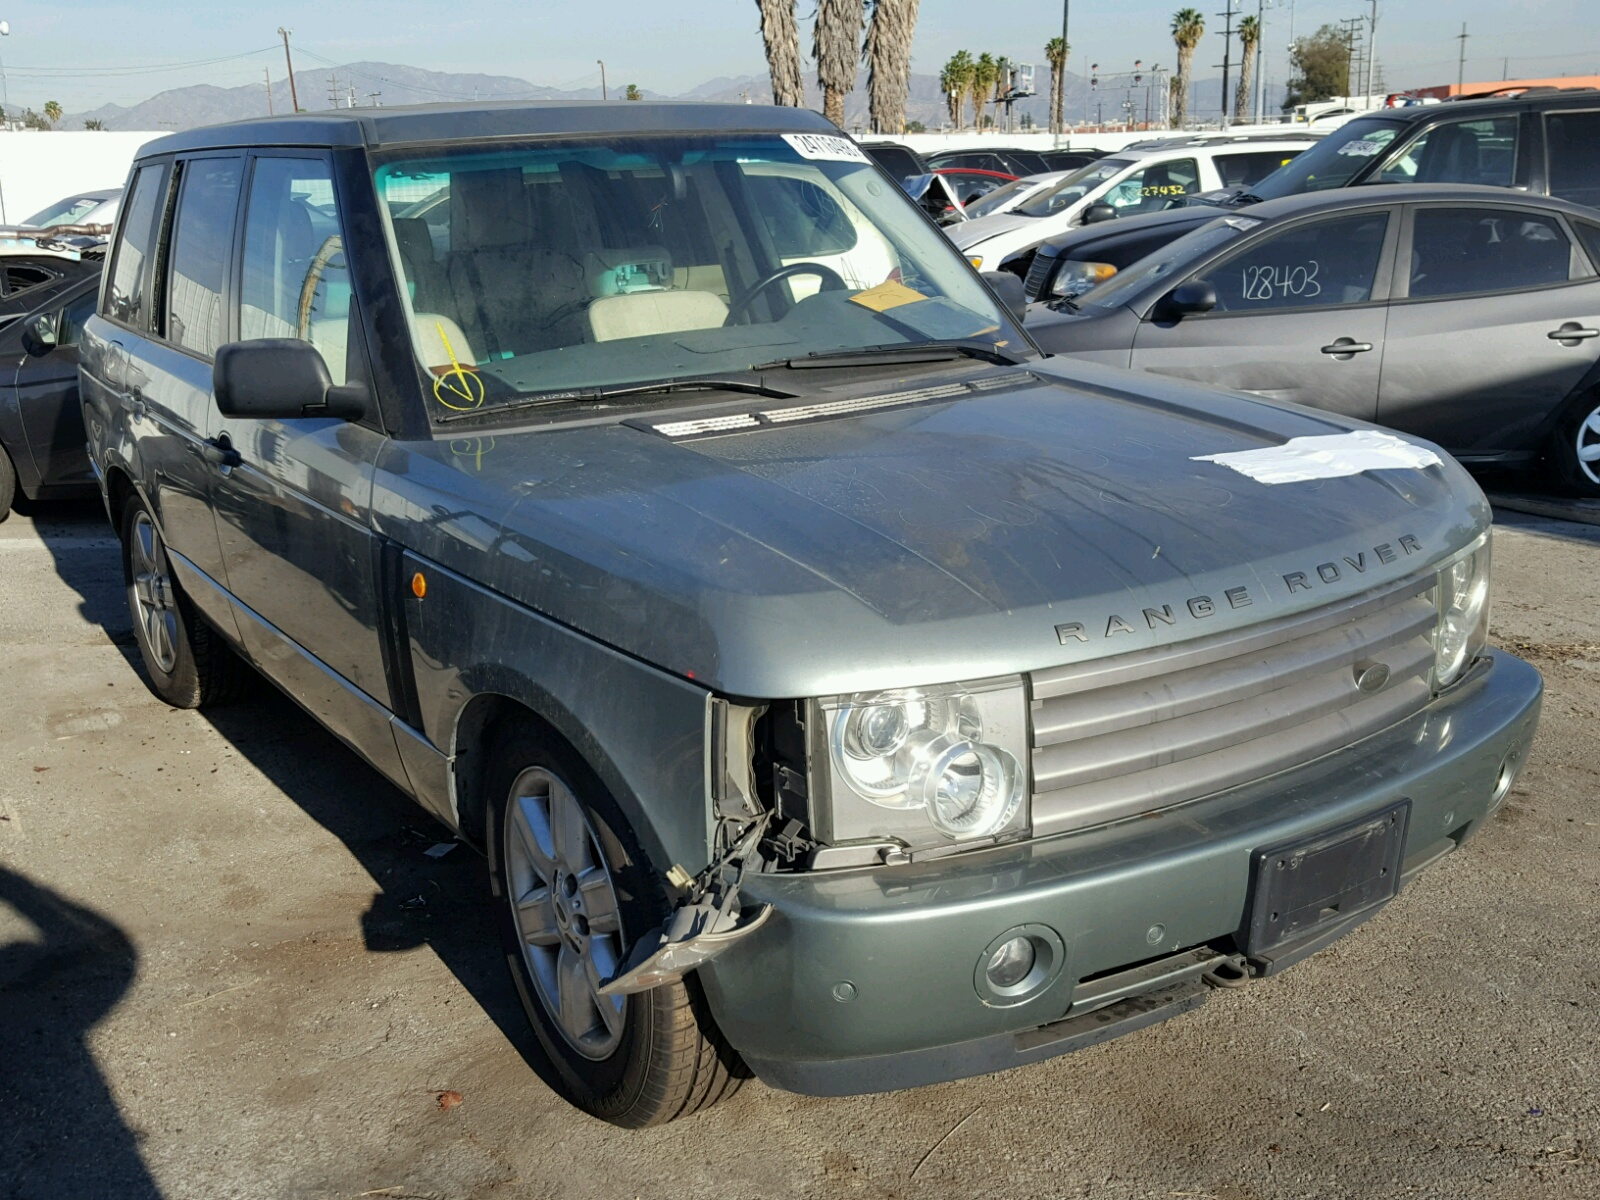 Auto Auction Ended on VIN SALME A 2003 LAND ROVER RANGE